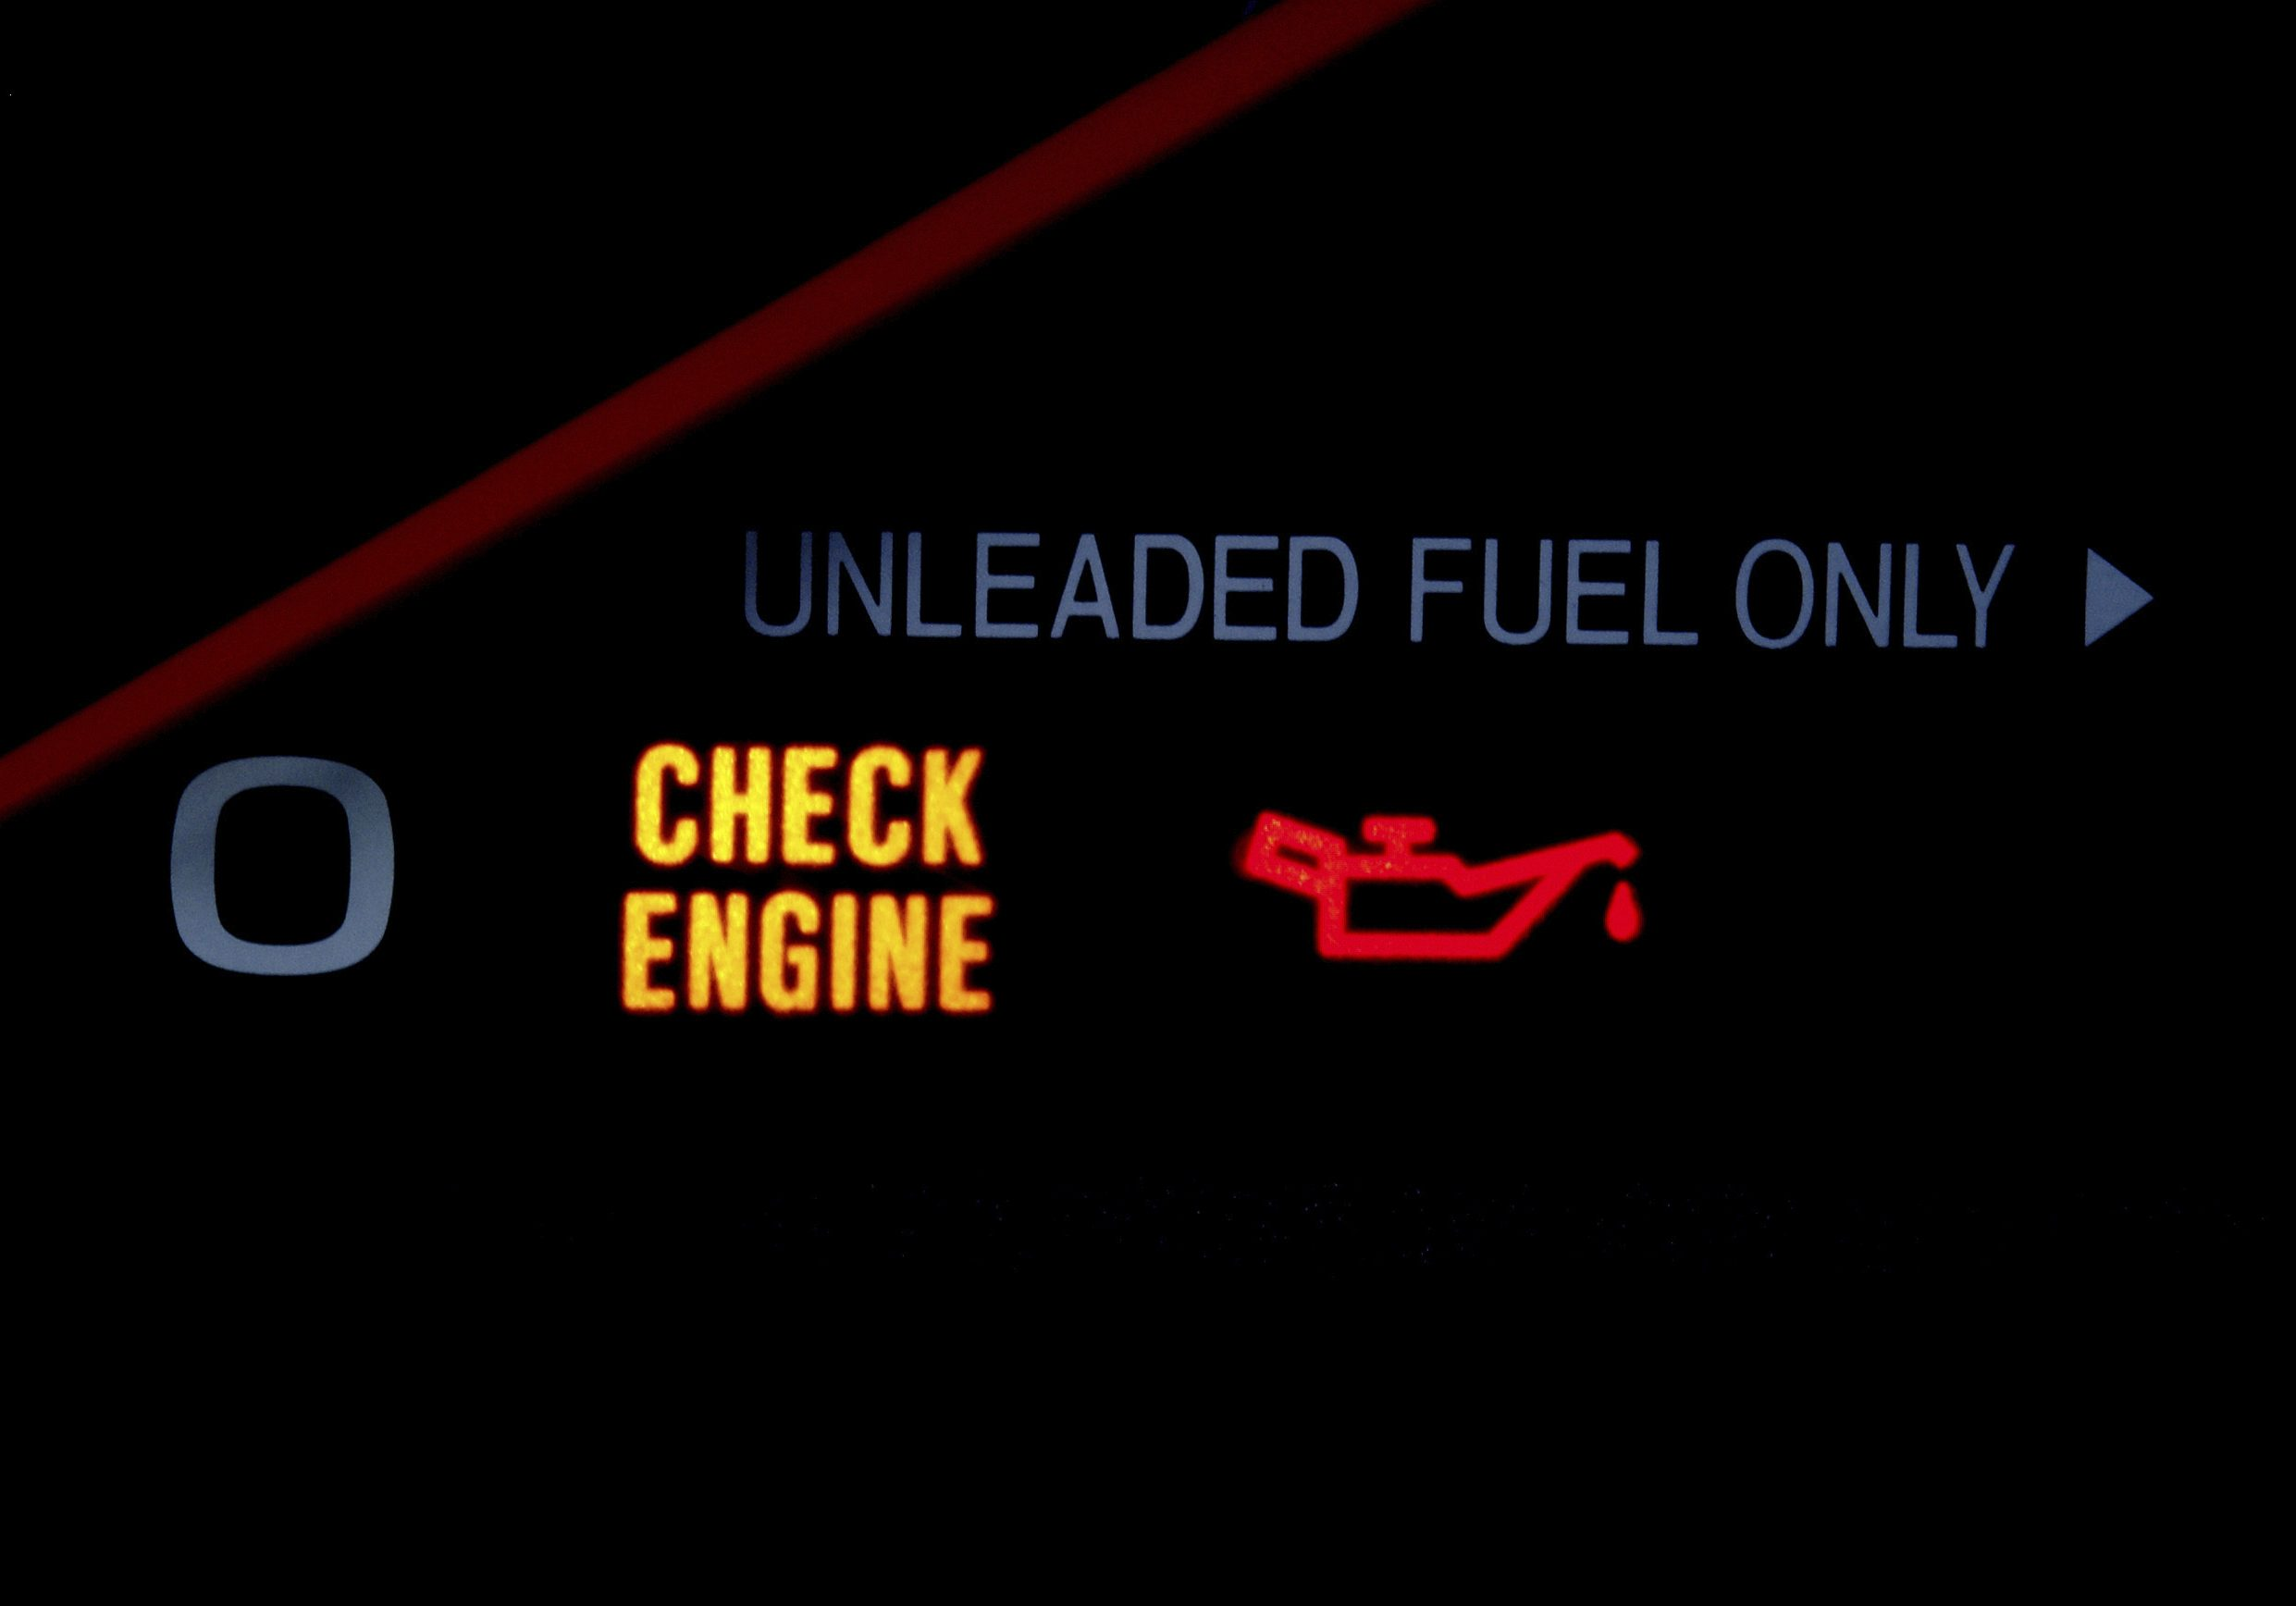 Image of check engine light on a vehicle dashboard